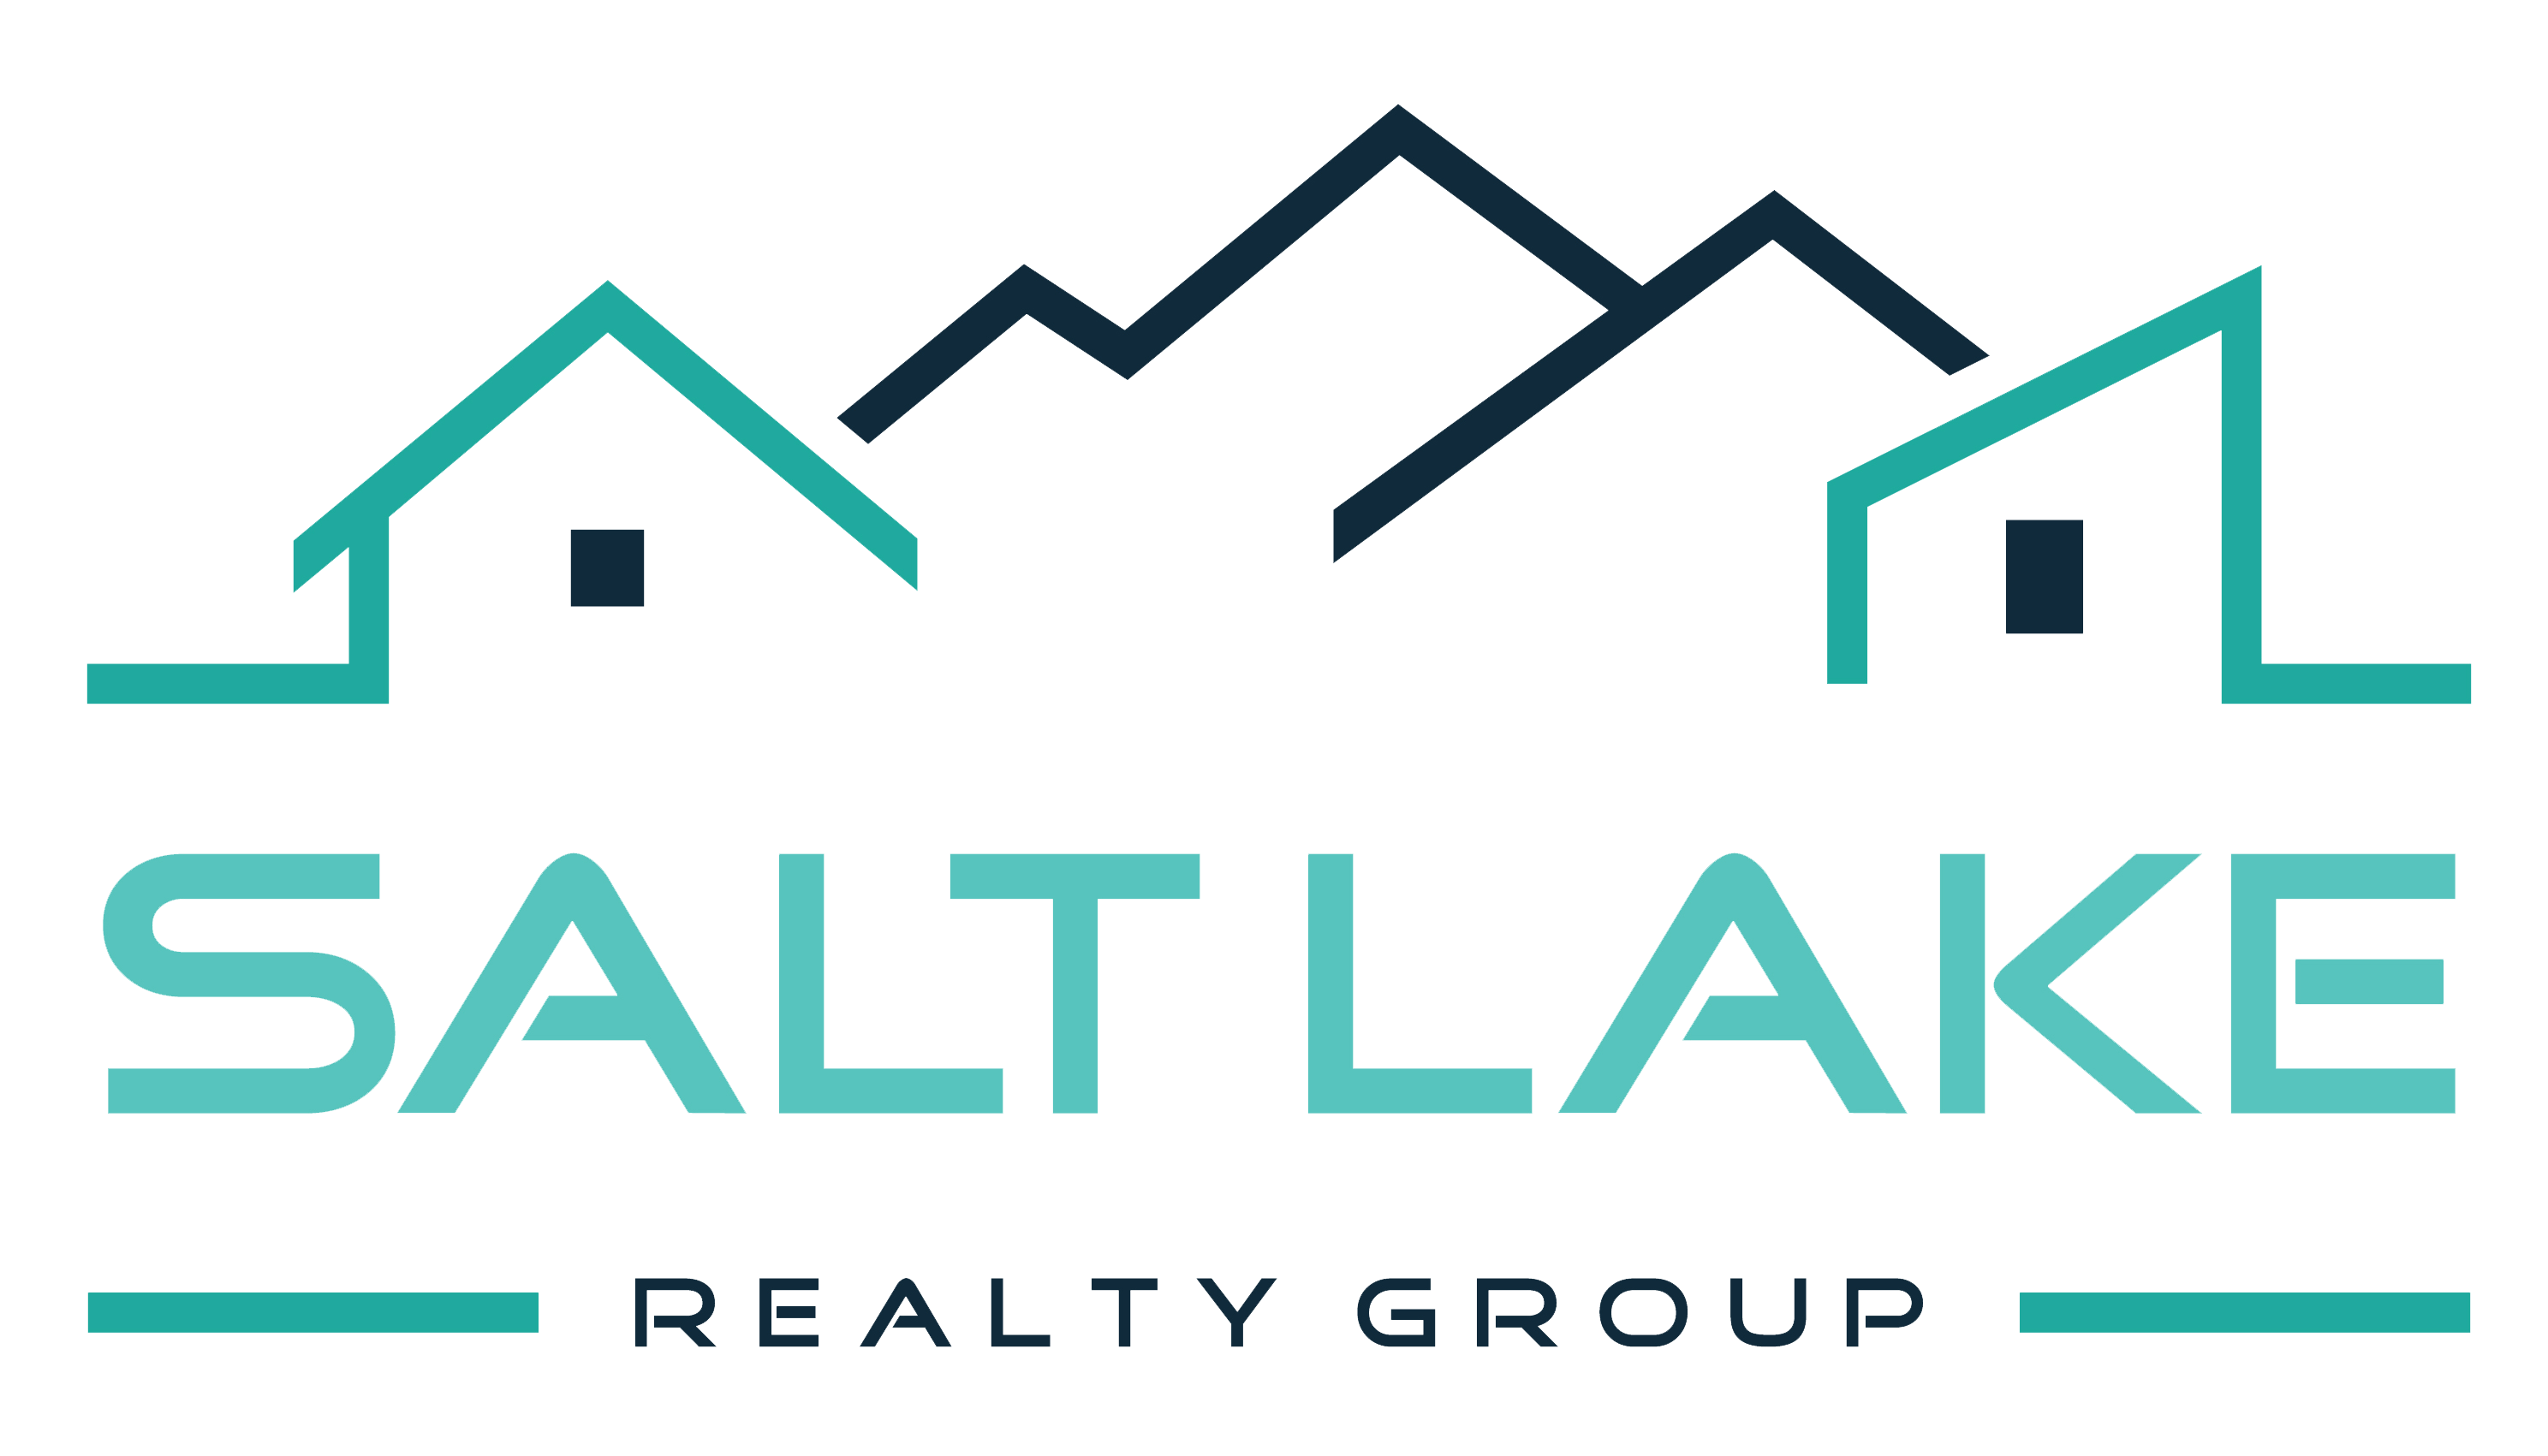 Salt Lake Realty Group